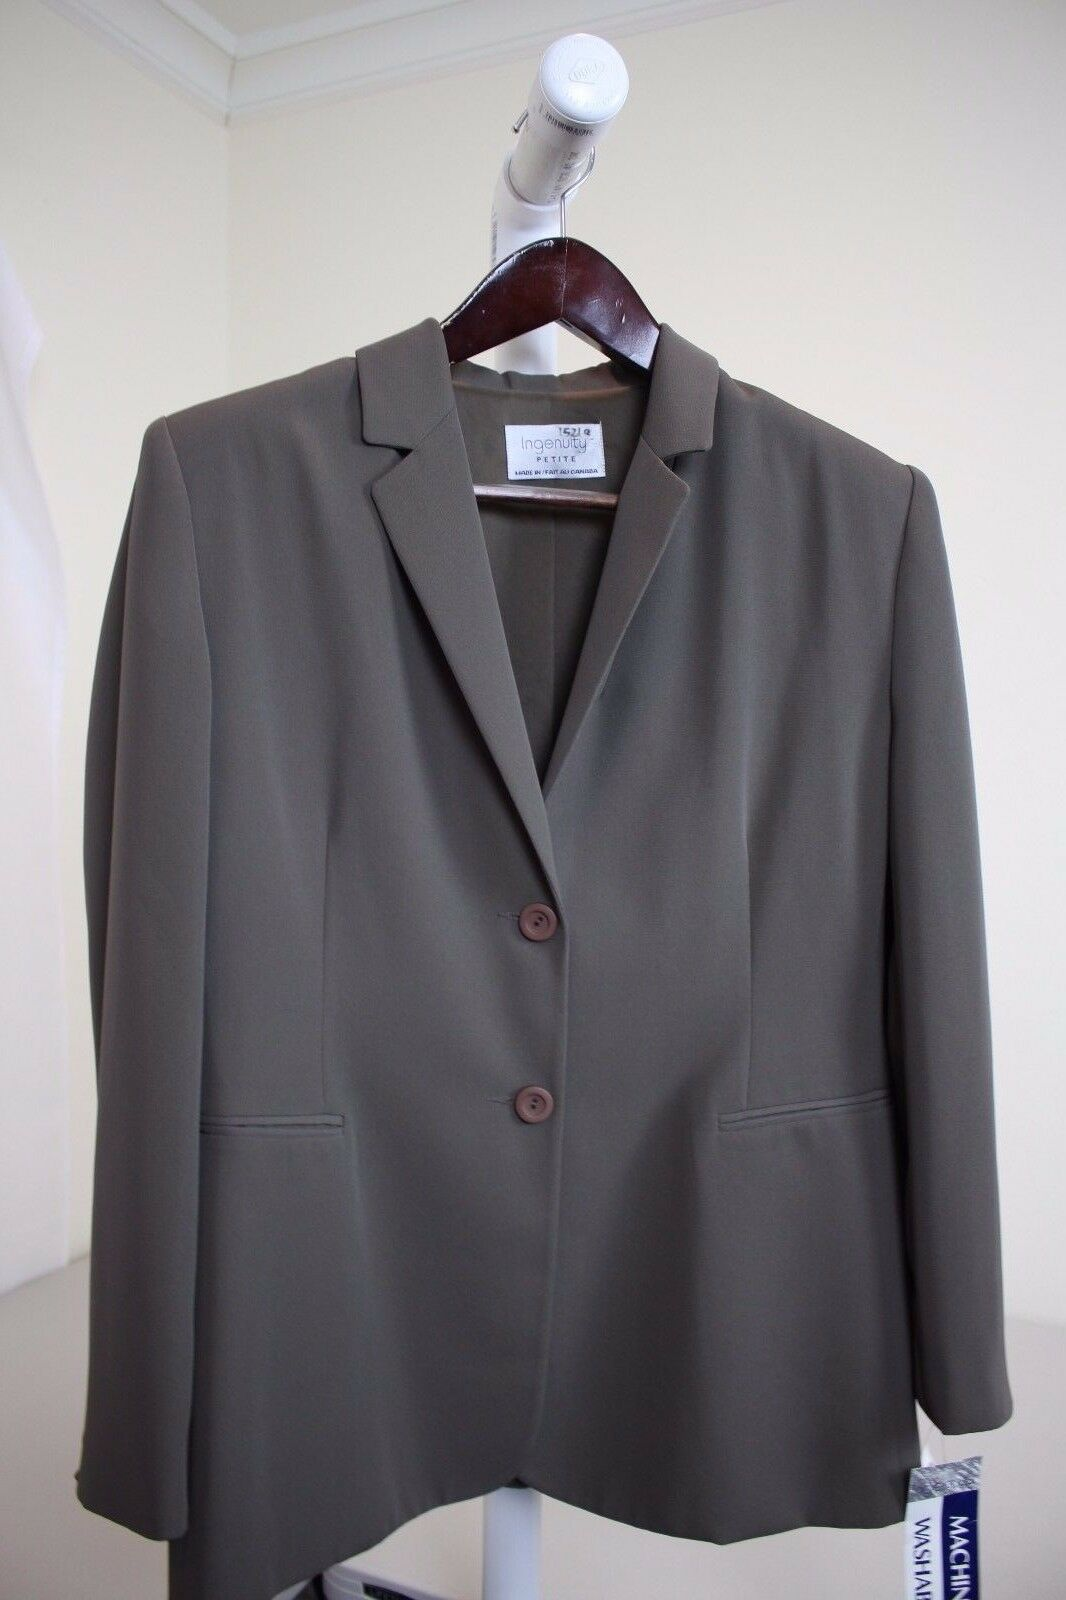 Ingenuity 100% Polyester Green 2 Button Lined Blazer Size - 14P